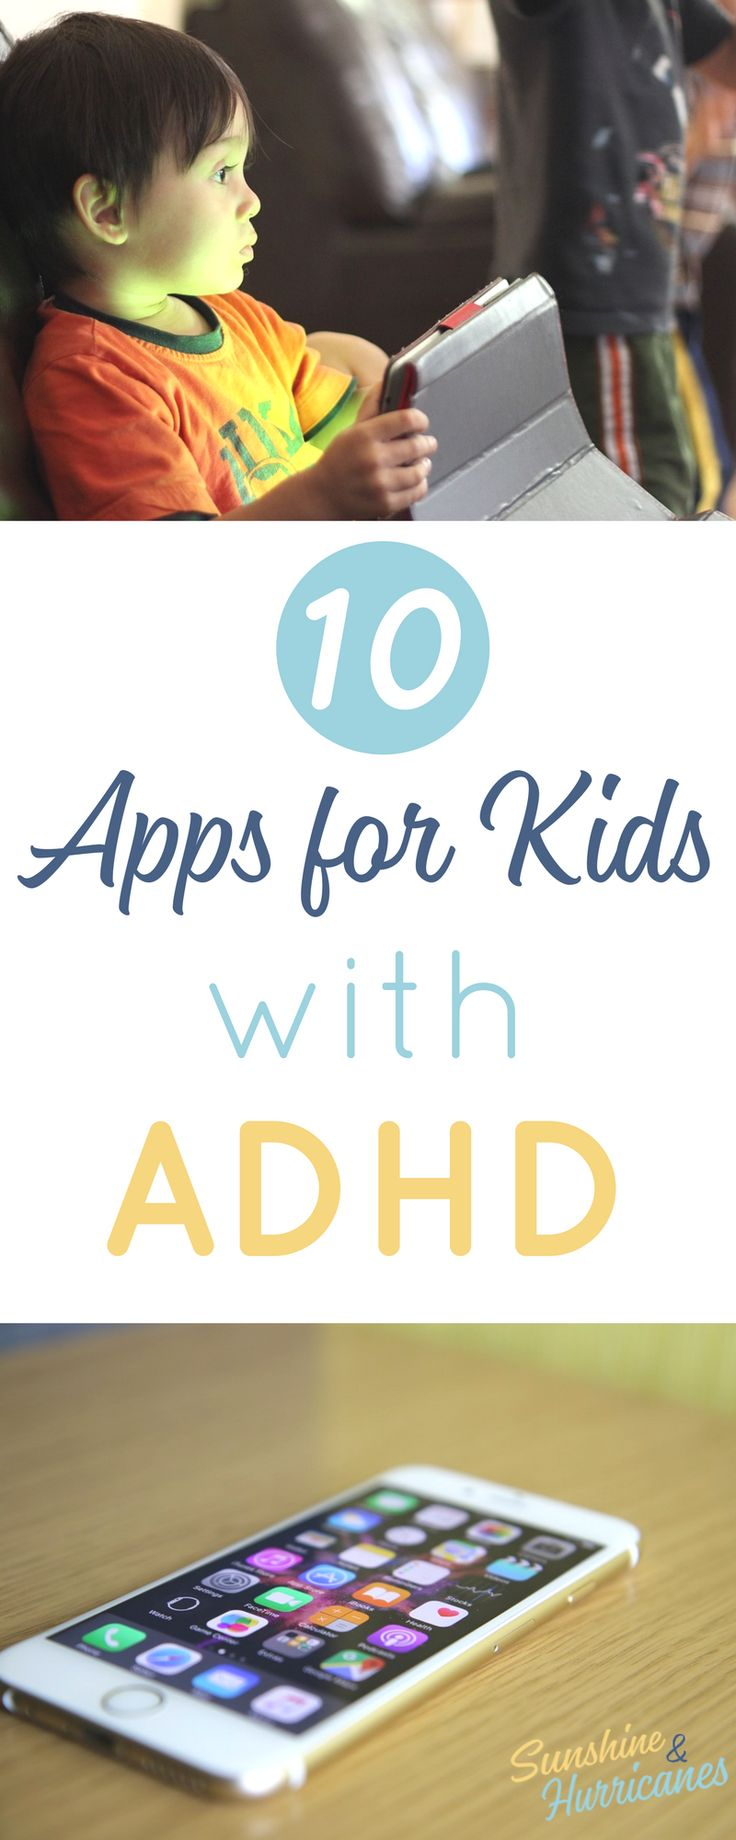 10 ADHD Apps for Kids to help your children learn to stay focused and better manage everyday tasks. ADHD|Apps|Apps for Kids|Special Needs| Special Needs Apps| Apps for Learning Disabilities via @sunandhurricane